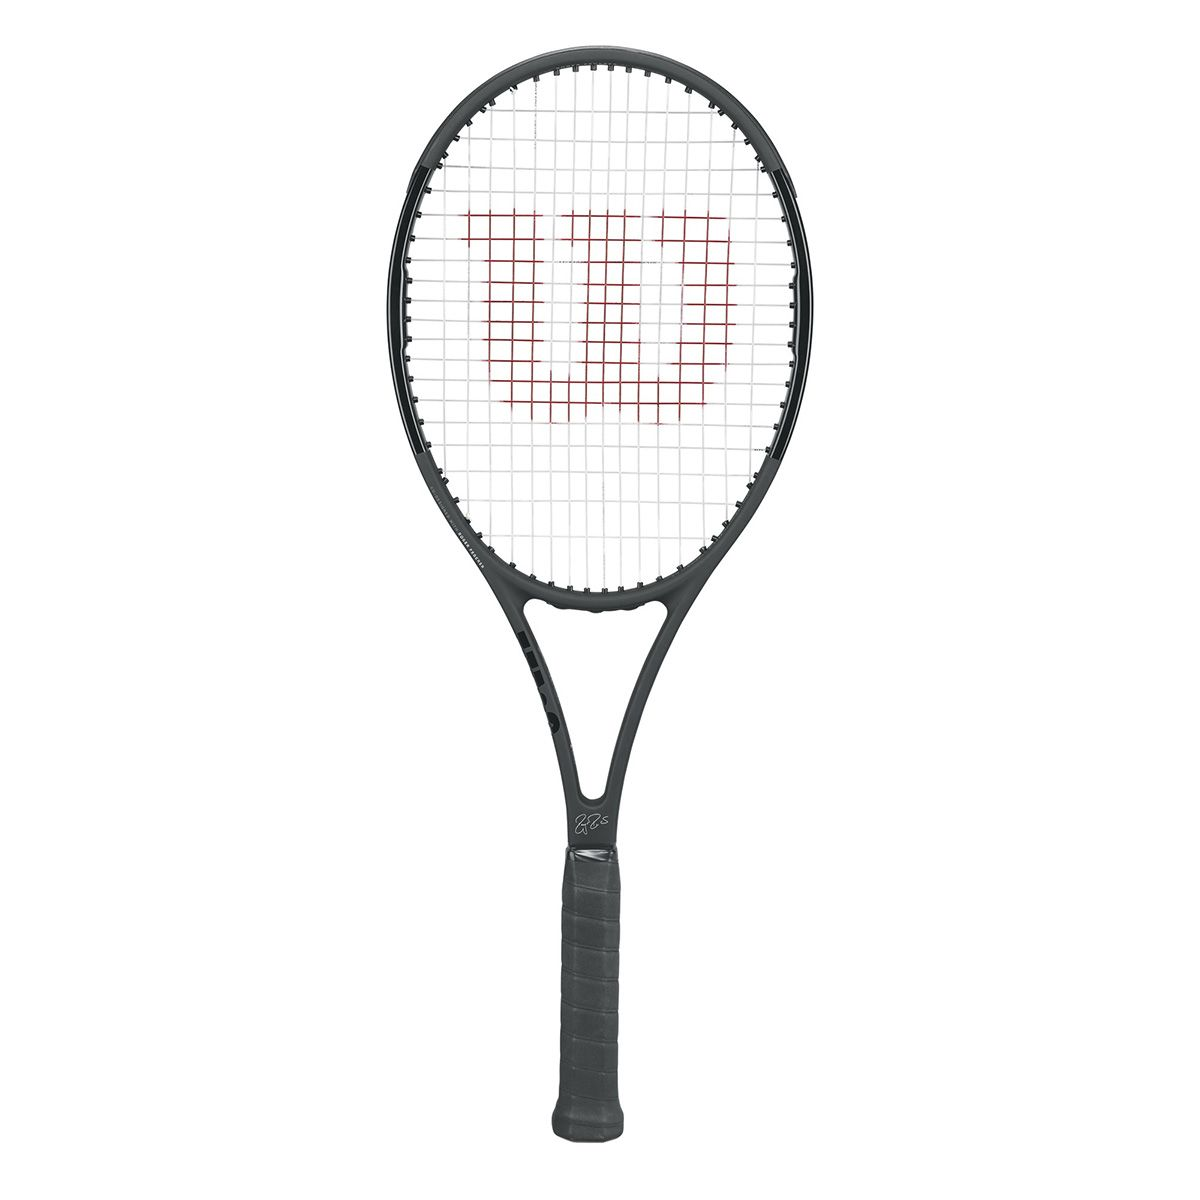 Co Designed By Roger Federer The Pro Staff Delivers The Pure Classic Feel Players Have Come To Love But With An All New U Tennis Racquet Tennis Racket Tennis